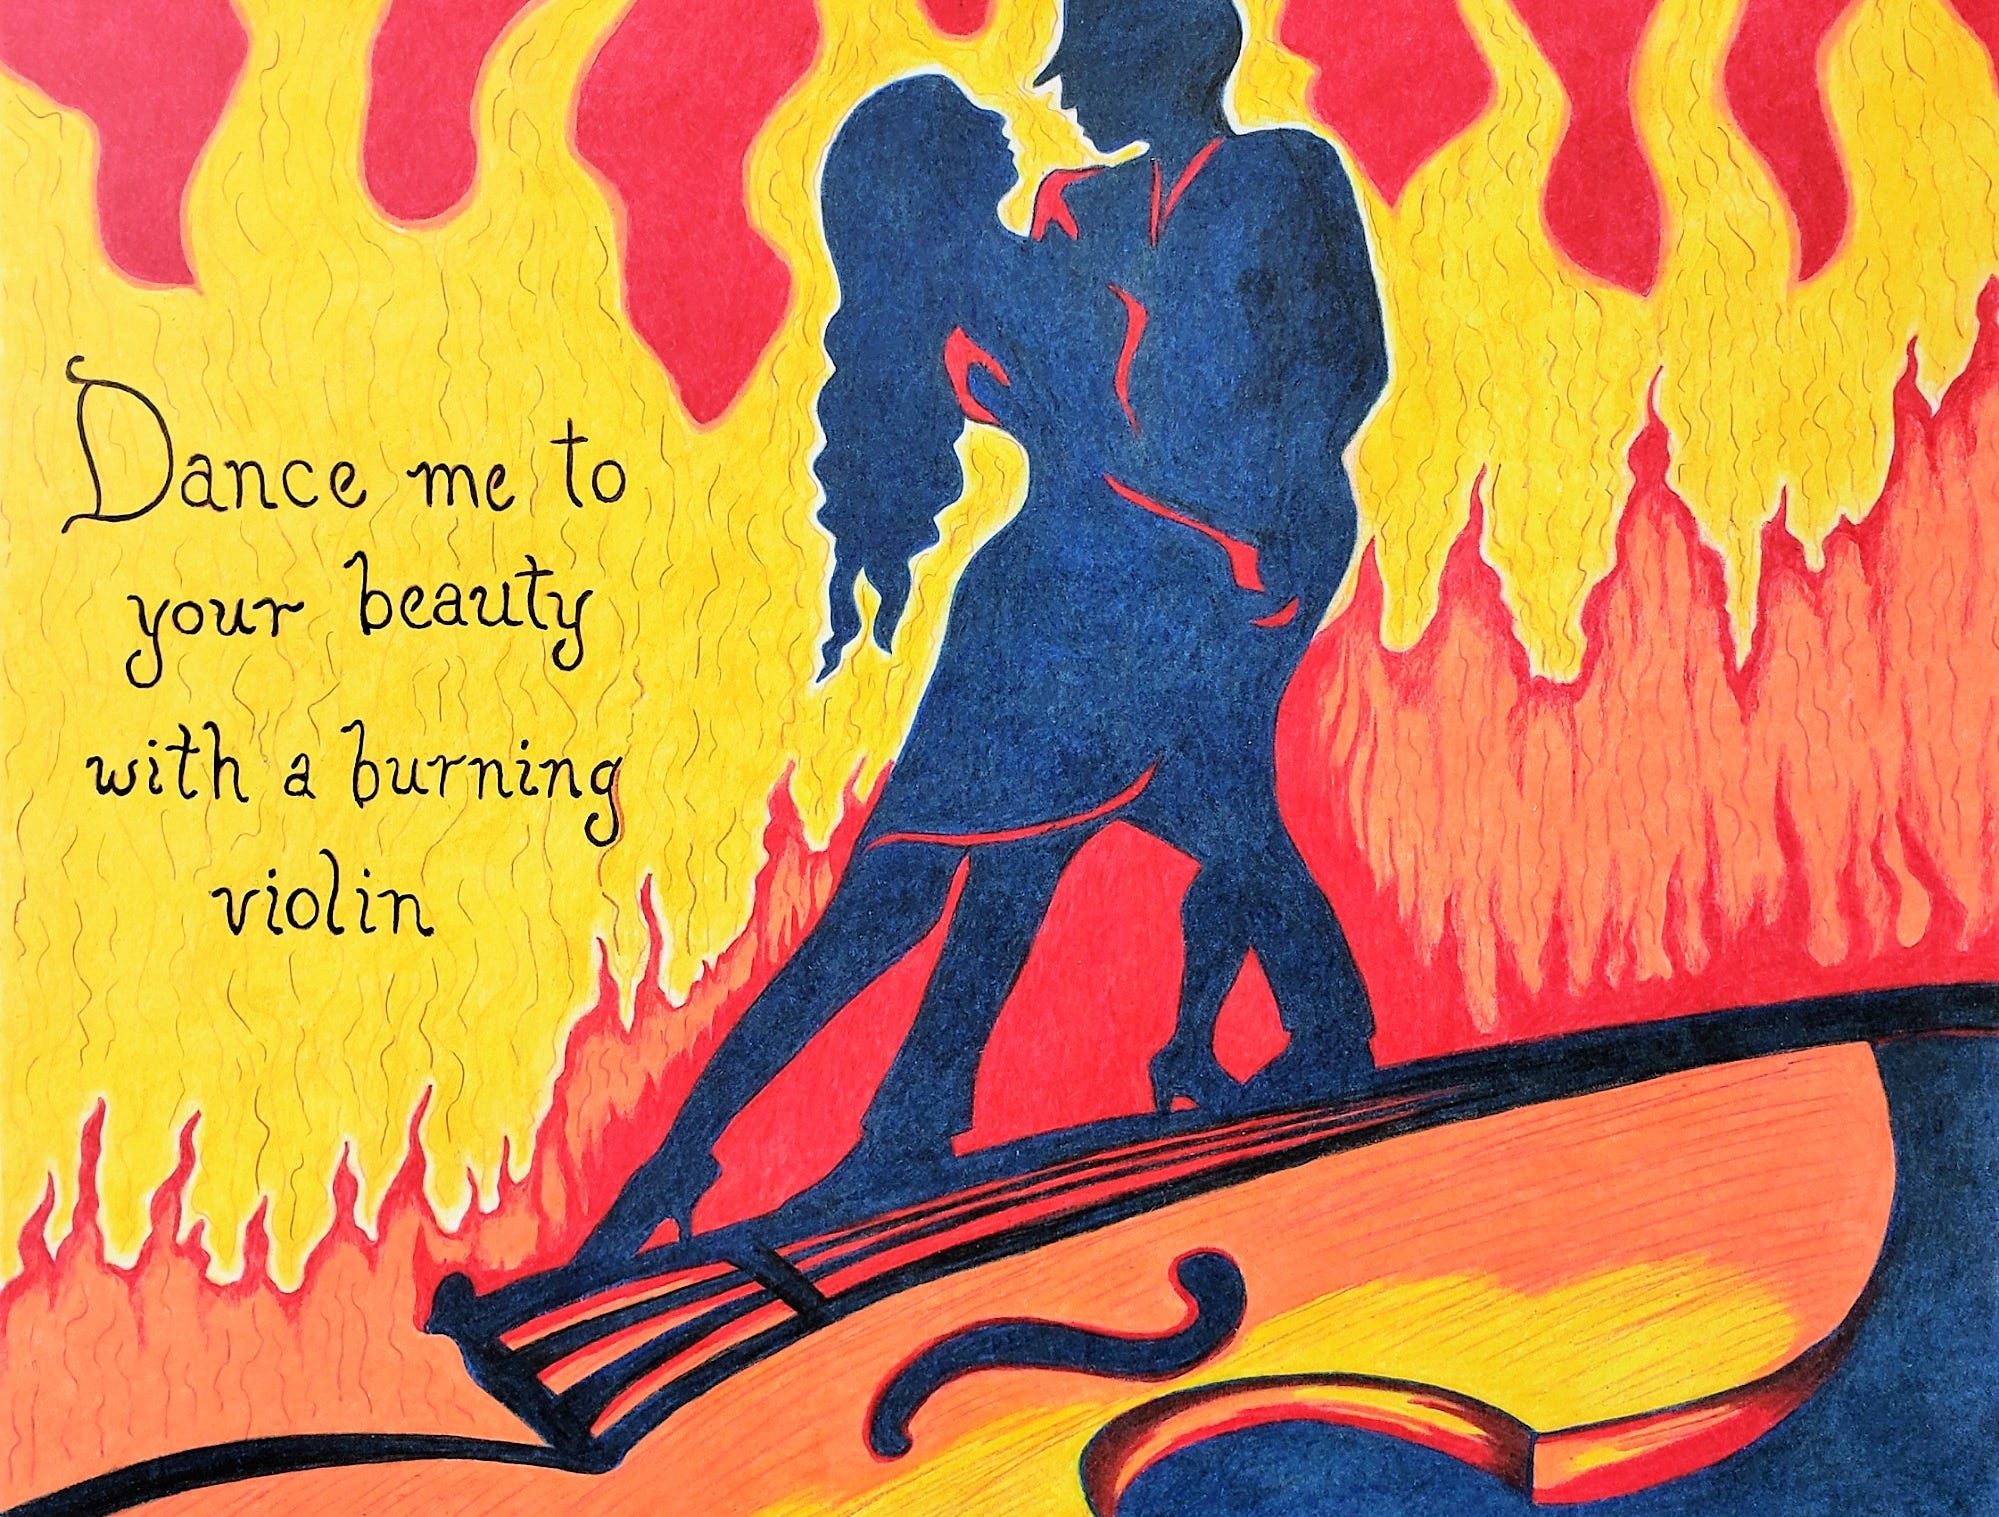 """Music as Music"" artist Carol Nagan's piece was inspired by her love for Leonard Cohen's poetry and music. She titled this ""Dance me to your beauty with a burning violin"""